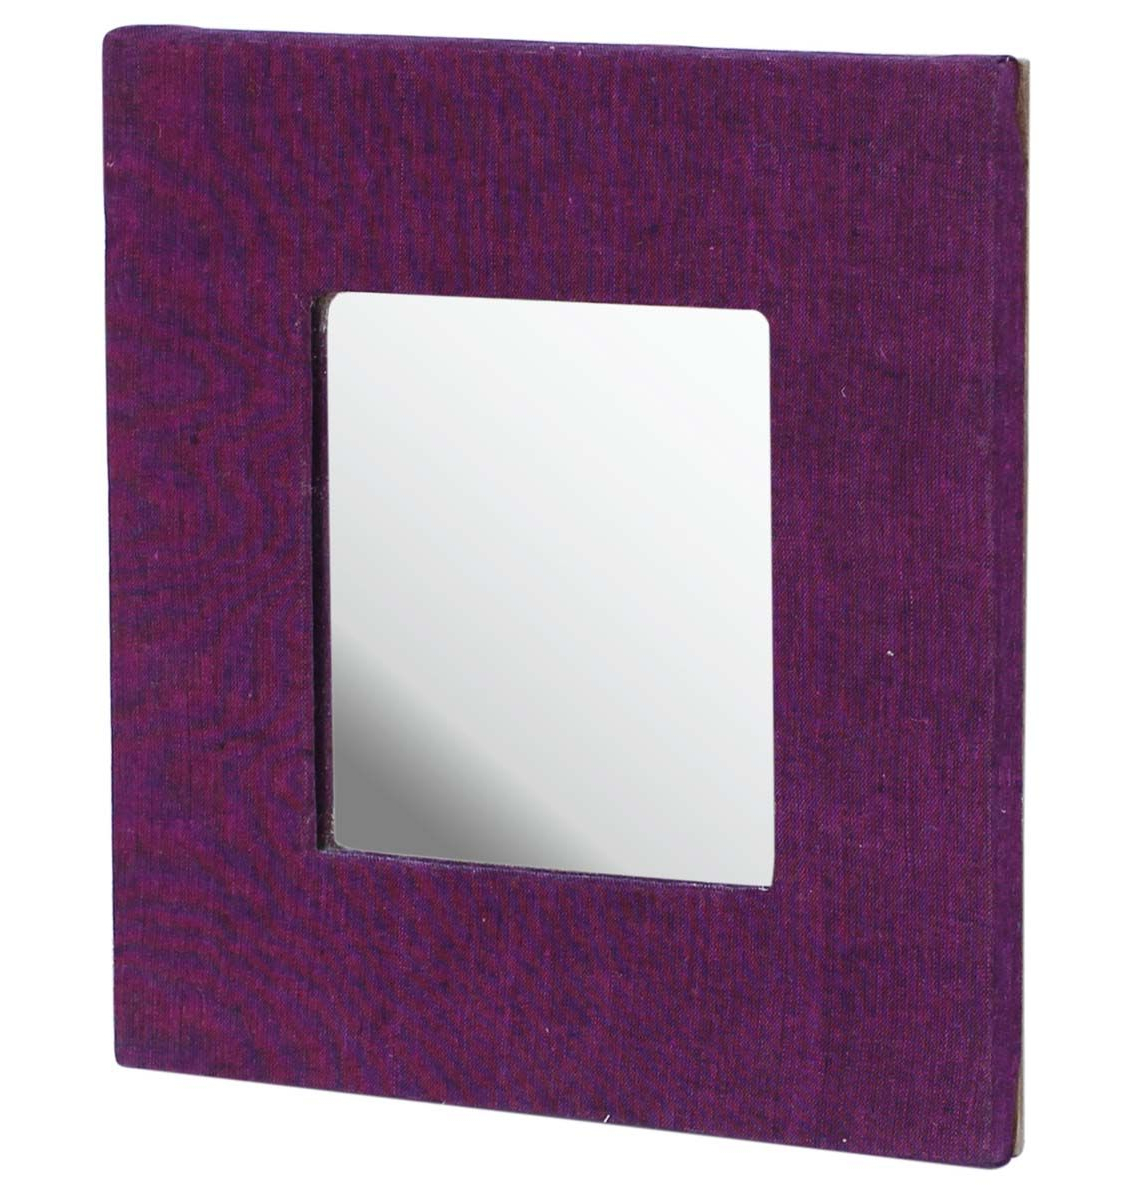 Purple Wall Mirrors For Recent Wholesale Handmade Square Shaped Mirror In Purple Color (View 12 of 20)